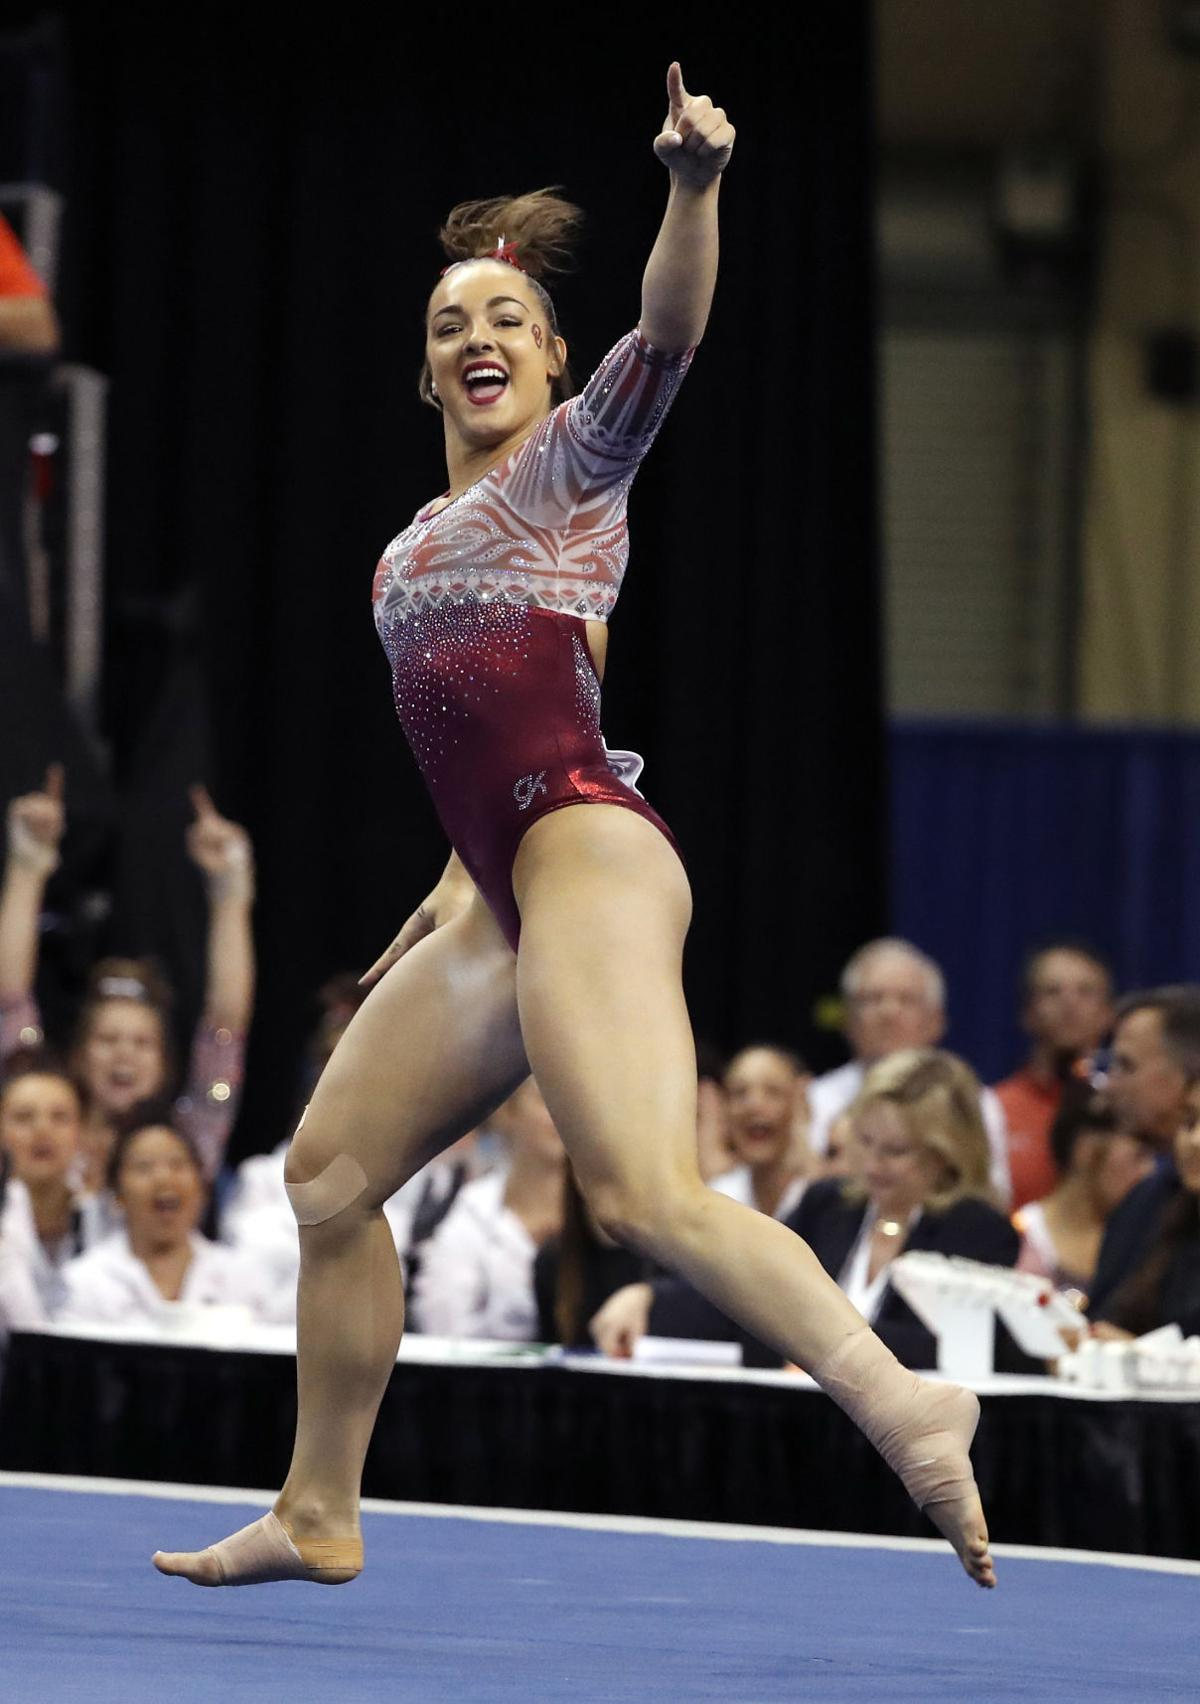 Scenes From The Ncaa Gymnastics Championships Sports